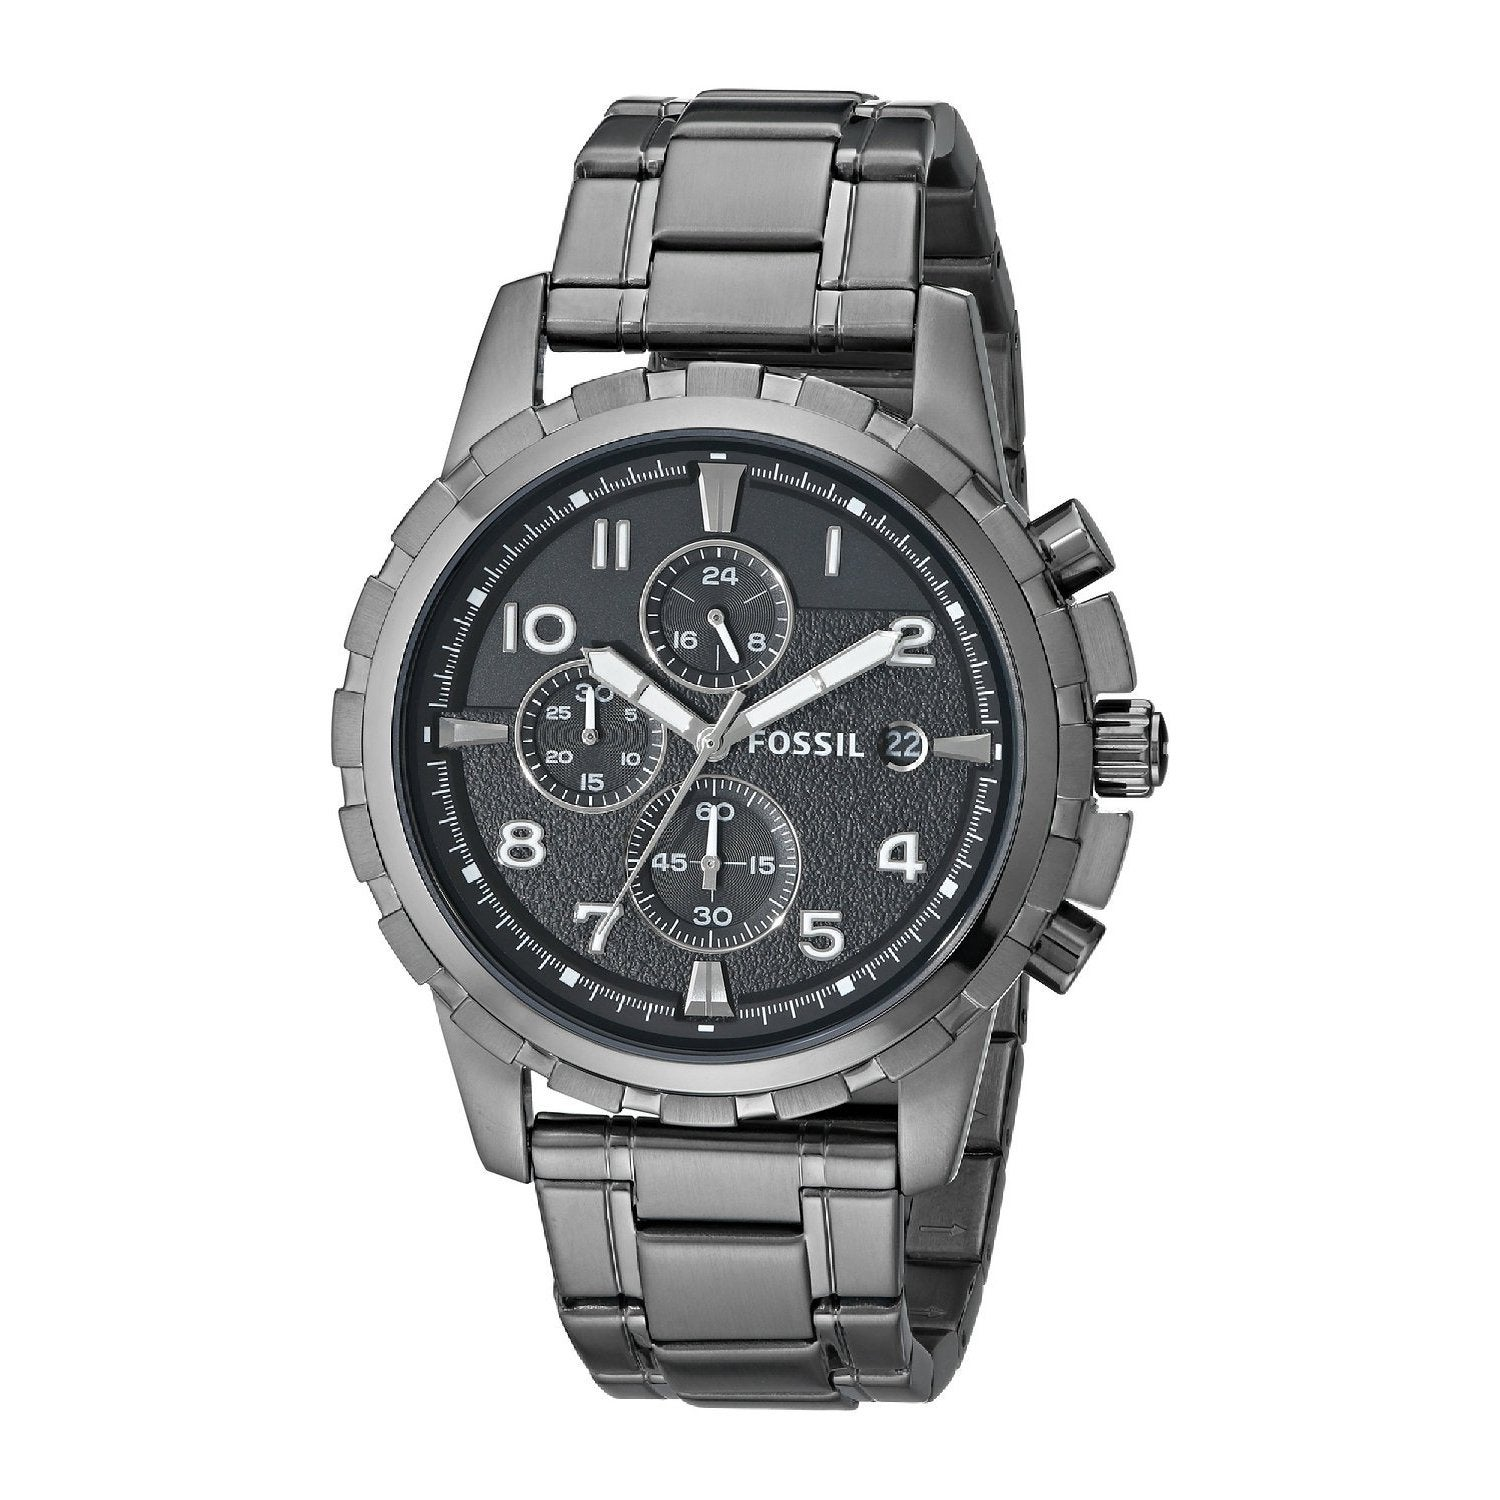 c54b68c97b2 Shop Fossil Men s  Dean  FS4721 Stainless Steel Watch - Free ...